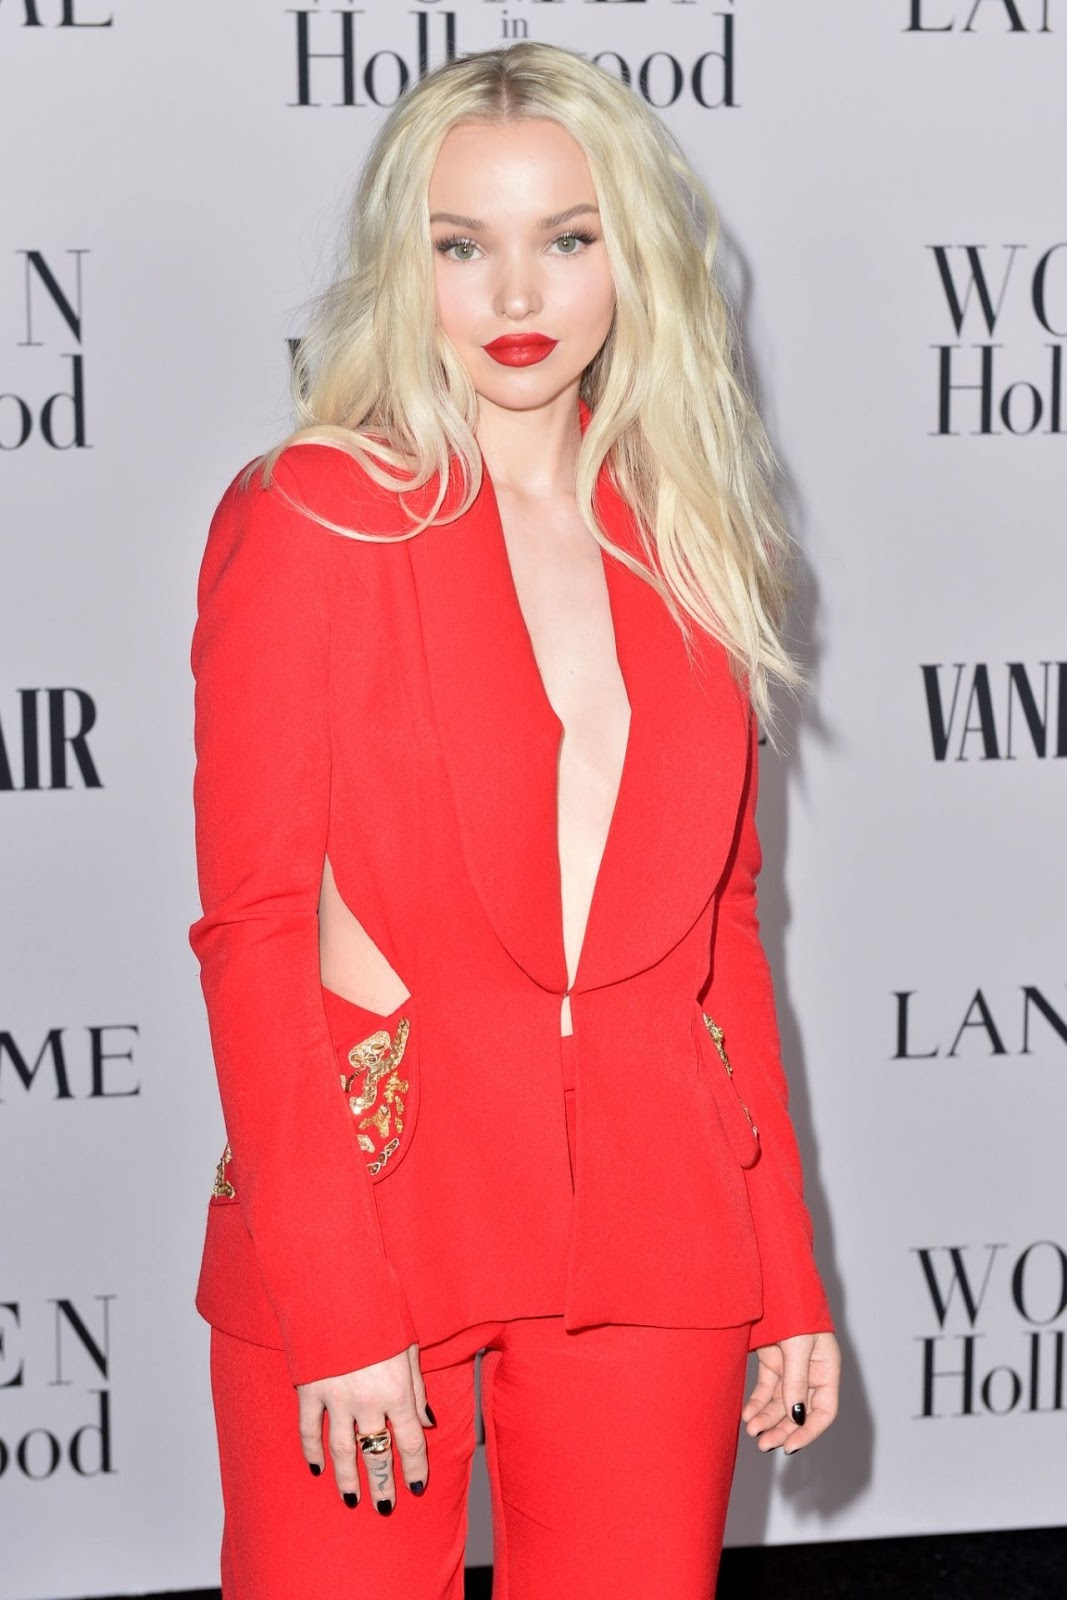 Dove Cameron – Vanity Fair and Lancome Women in Hollywood Celebration - Thu Feb 06 2020